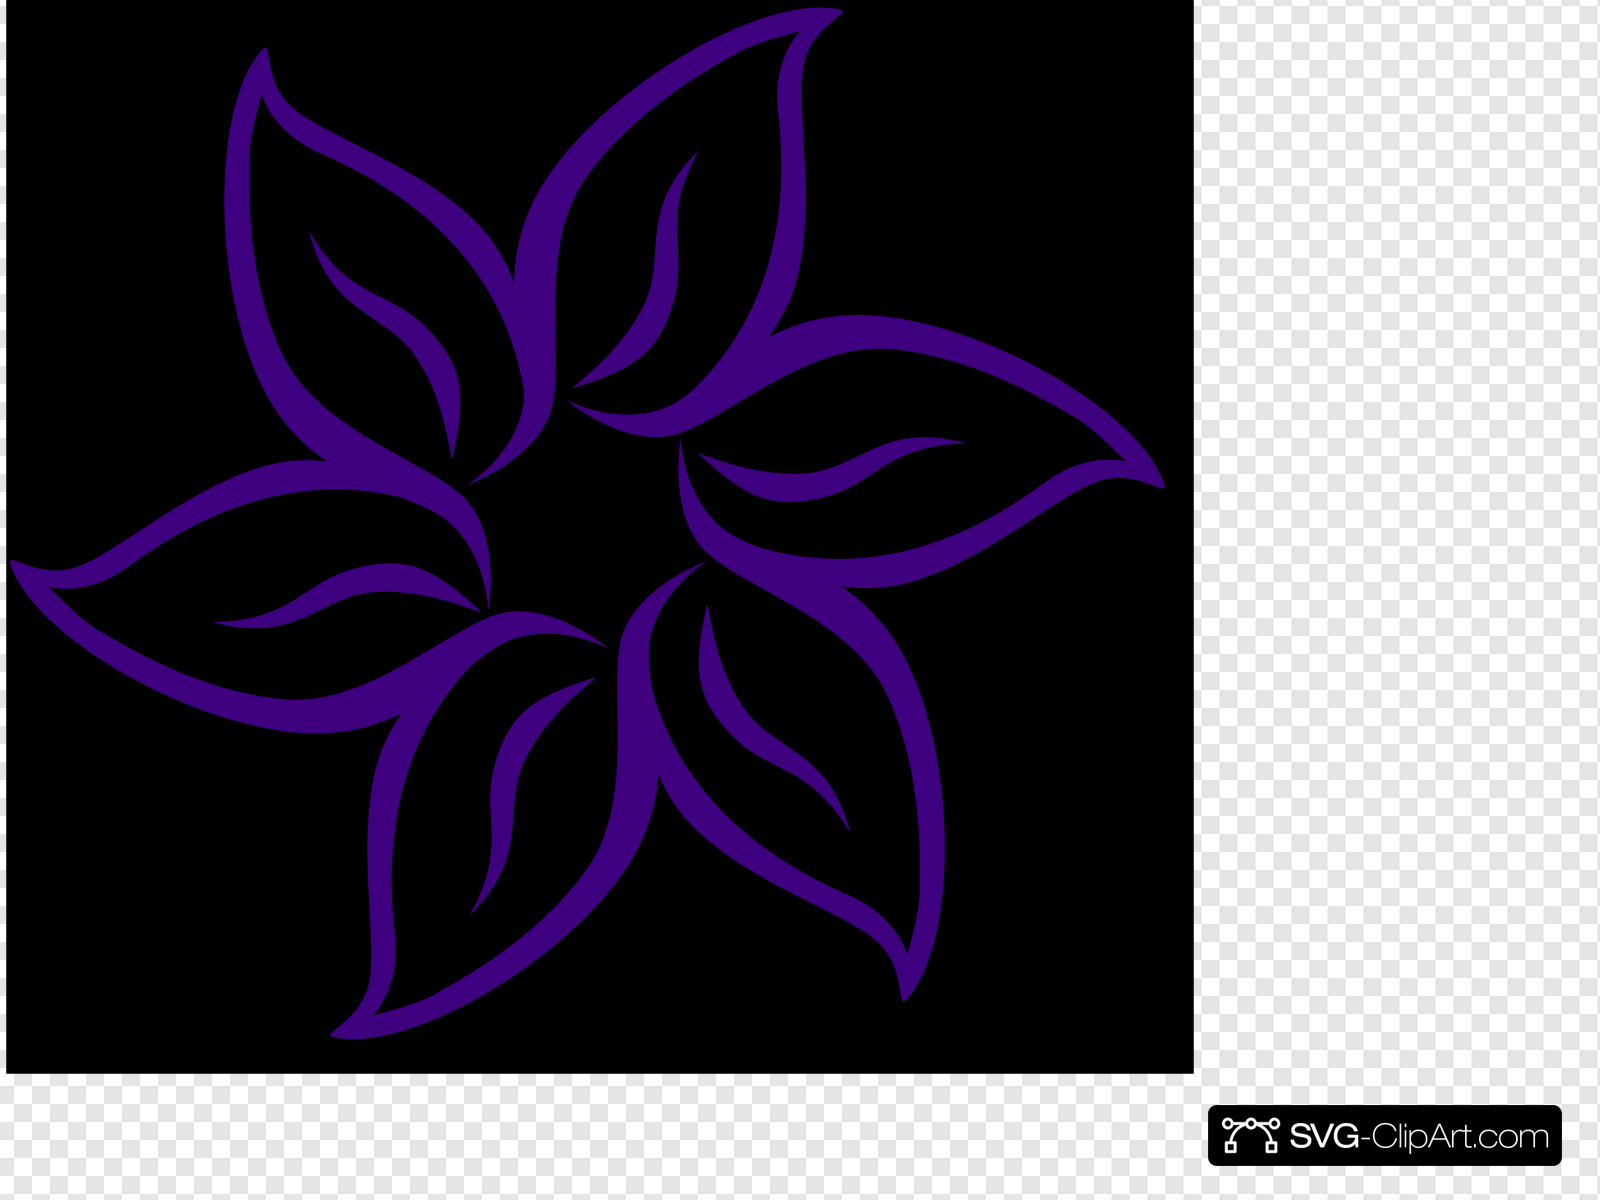 Cool Flower Clip art, Icon and SVG.